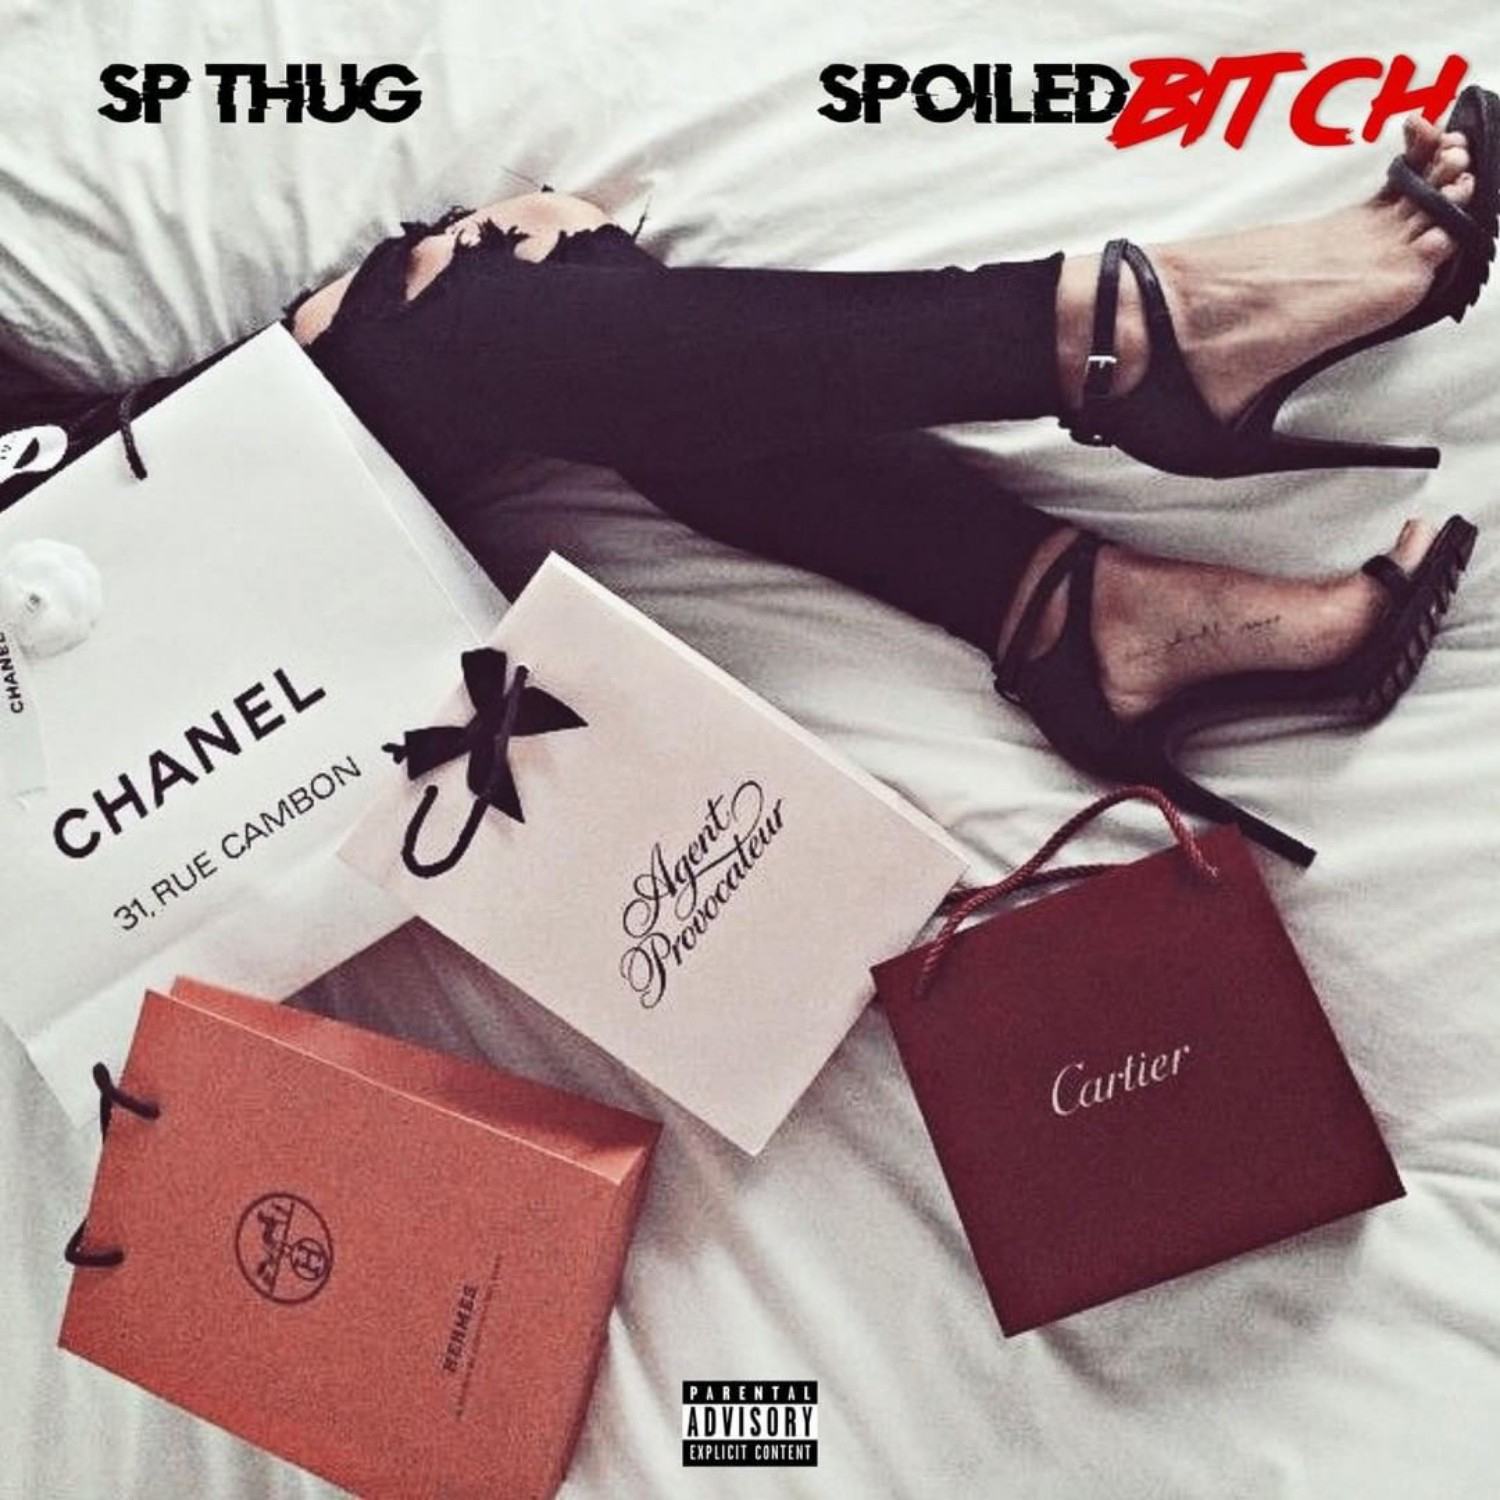 SP Thug - Spoiled Bitch - Single Cover  - Explicit.JPG